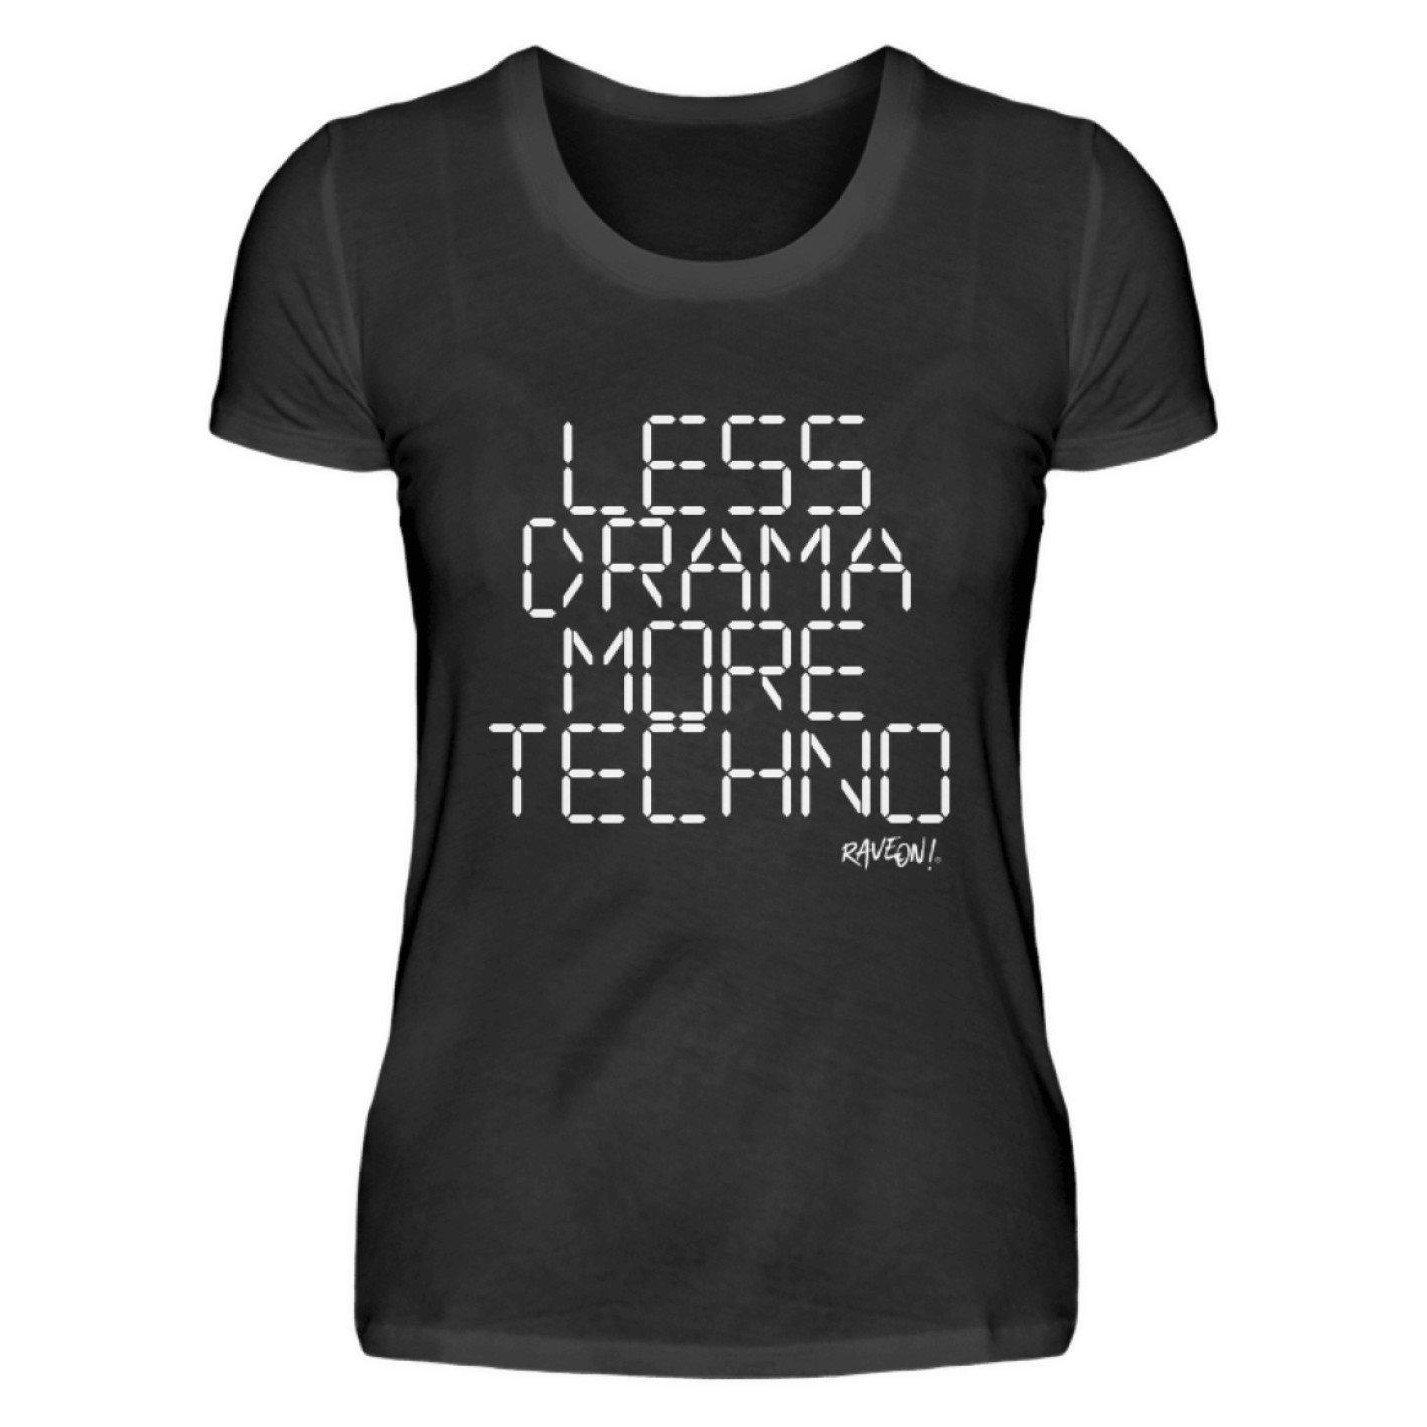 Less drama more techno Rave On!® Shirt - Ladies Shirt Ladies Basic T-Shirt Black / S - Rave On!® the club & techno scene shop for cool young fashion streetwear style & fashion outfits + sexy festival 420 stuff